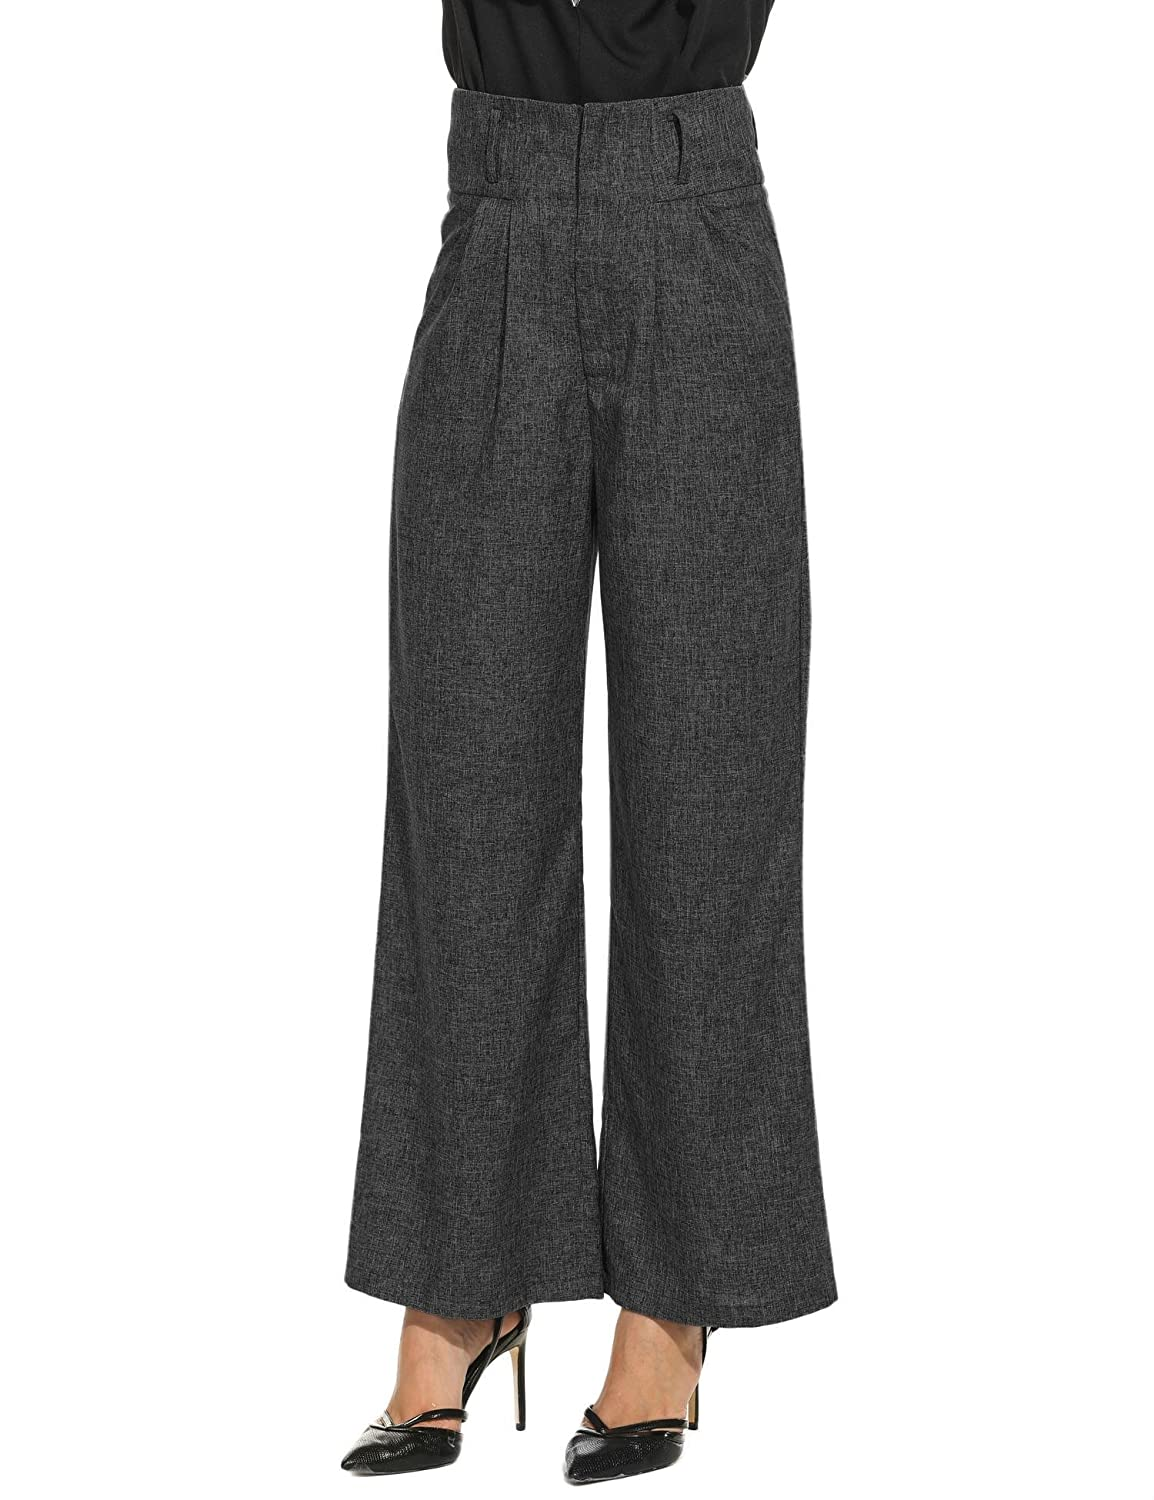 1920s Style Women's Pants, Trousers, Knickers, Tuxedo Zeagoo Womens Casual Superline Wide Flare Leg High Waist Zipper Solid Long Pants $27.99 AT vintagedancer.com